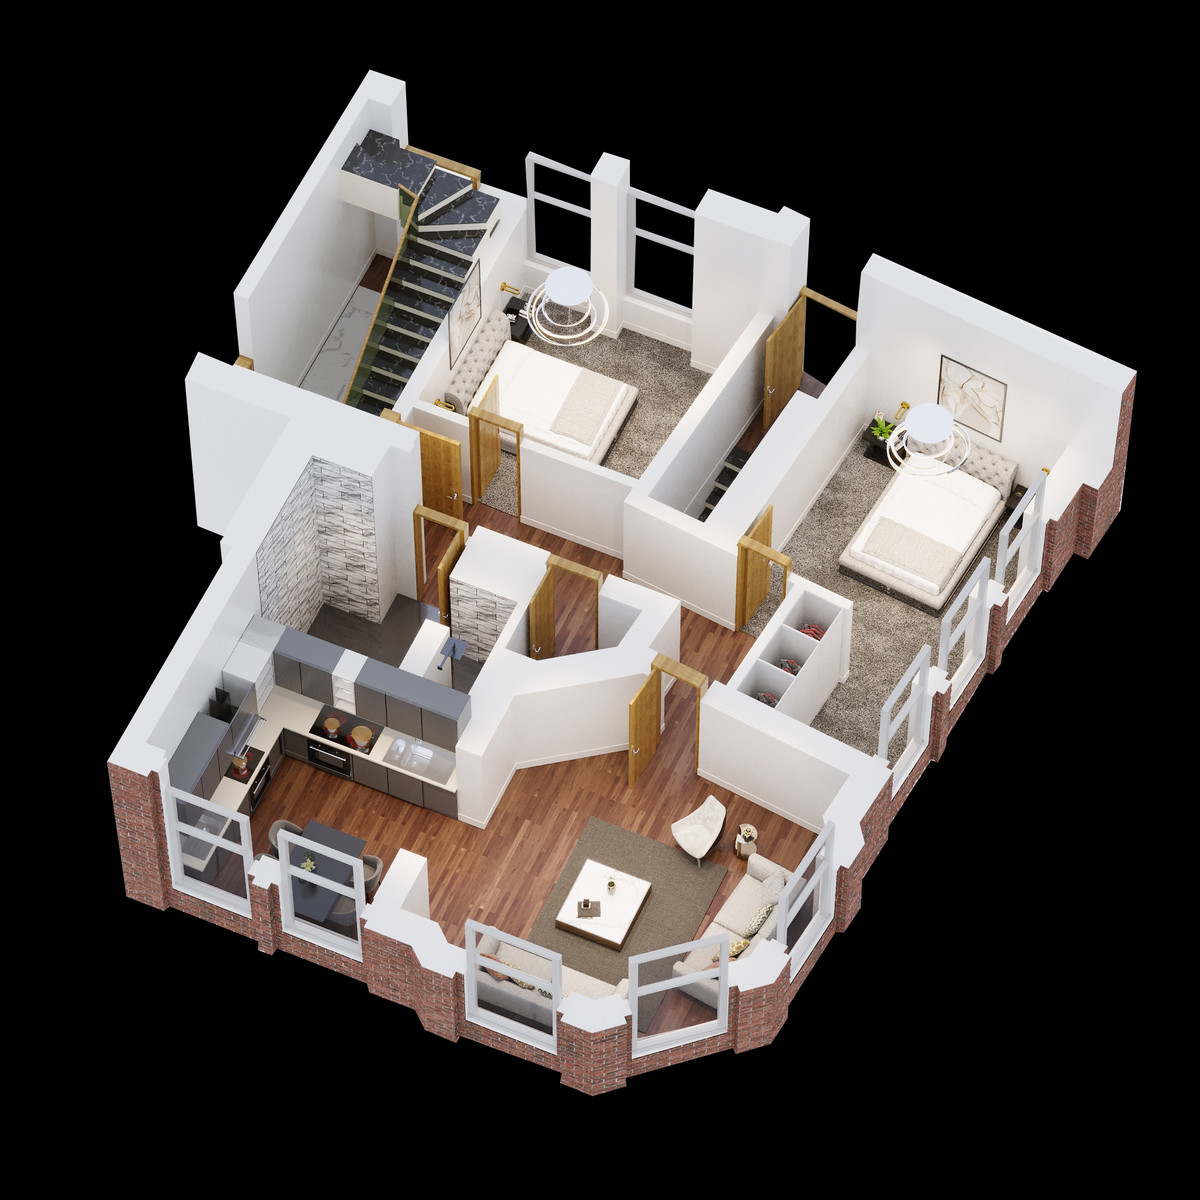 Sydenham Place, 26B Tenby Street, Jewellery Quarter floorplan 1 of 2